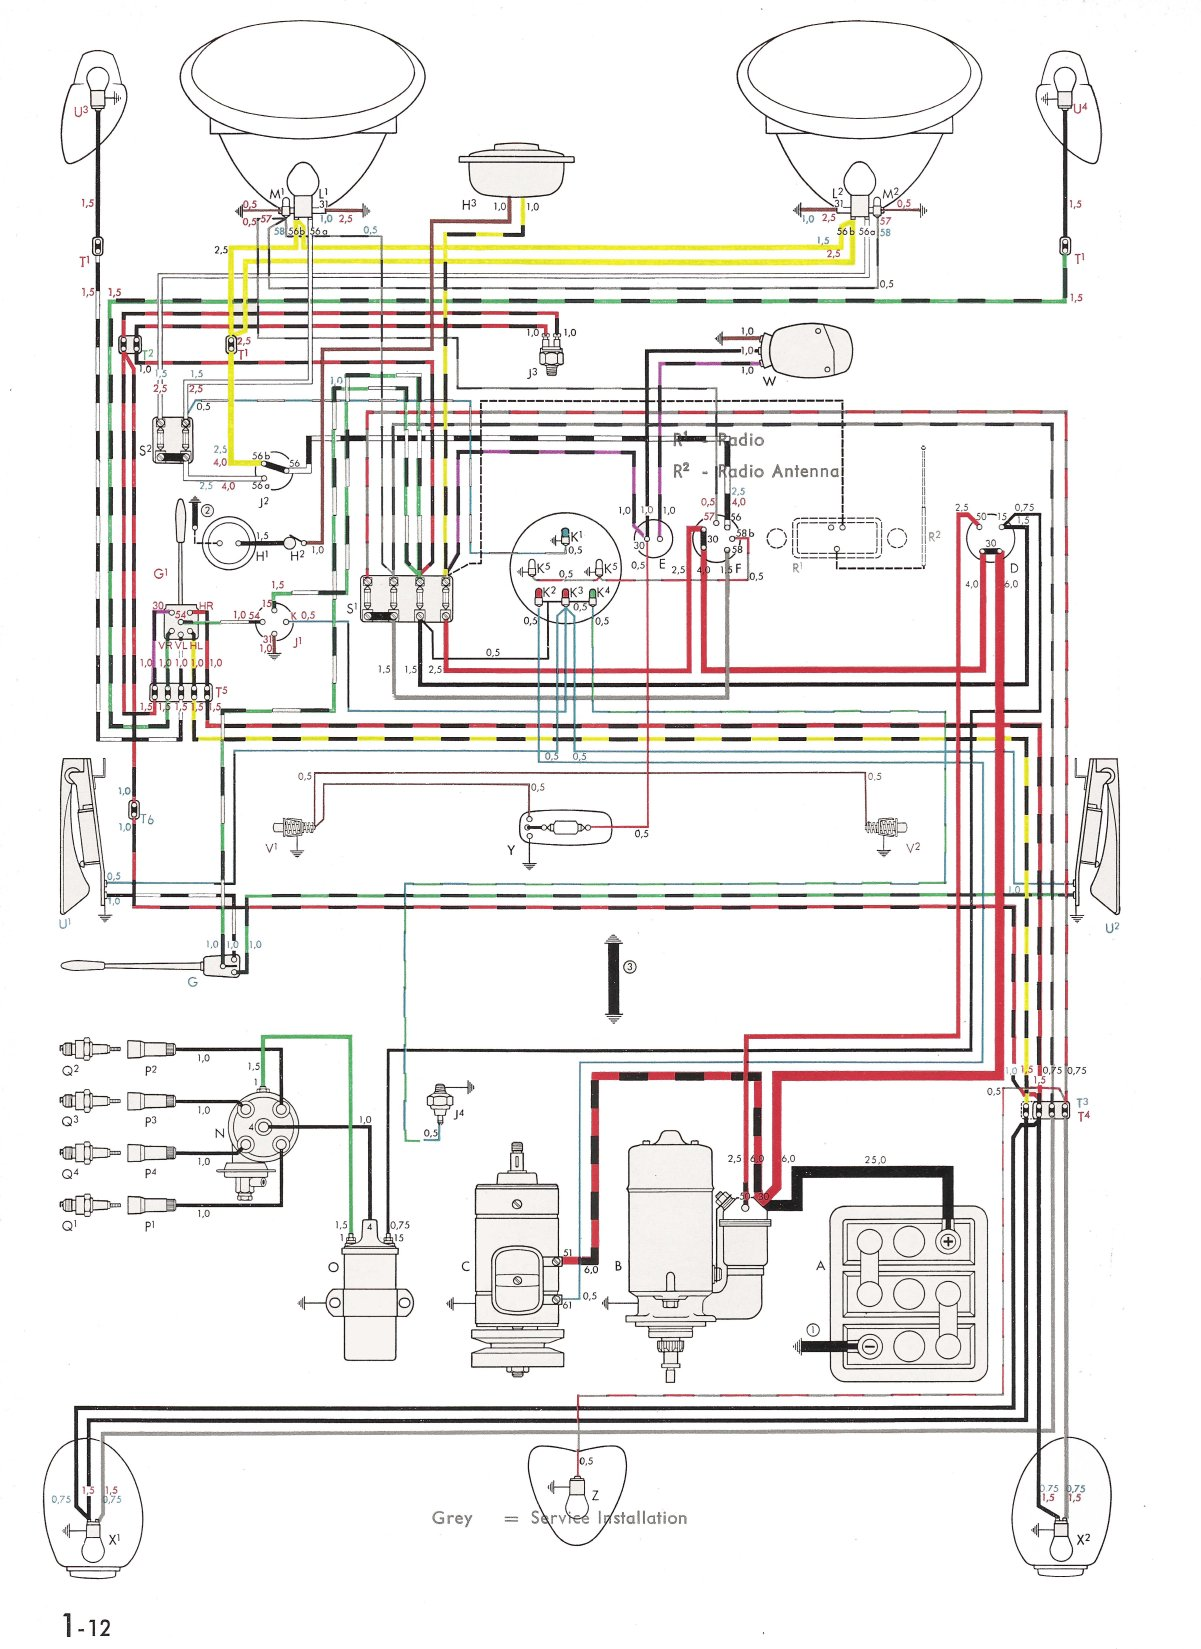 vw beetle wiring diagrams wire center u2022 rh mitzuradio me 2006 vw beetle ac wiring diagram 2006 volkswagen beetle wiring diagram